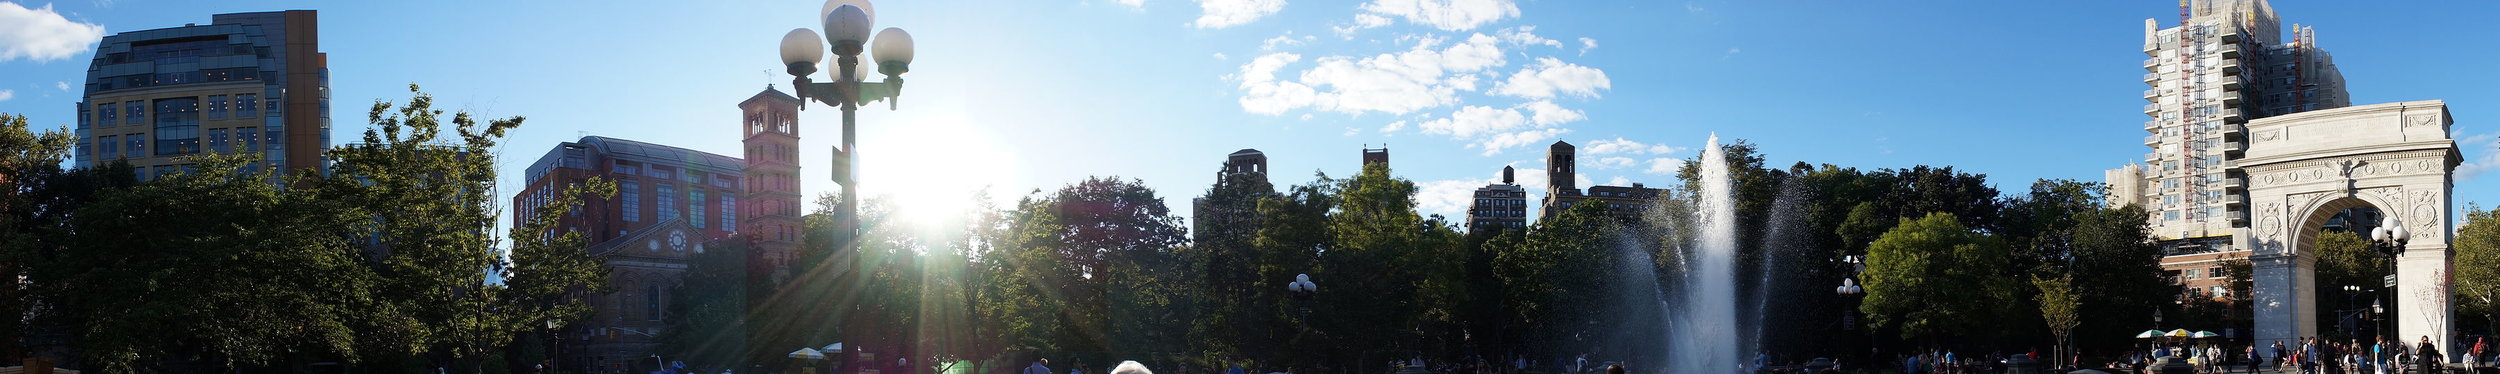 Washington_Square_Park.jpg